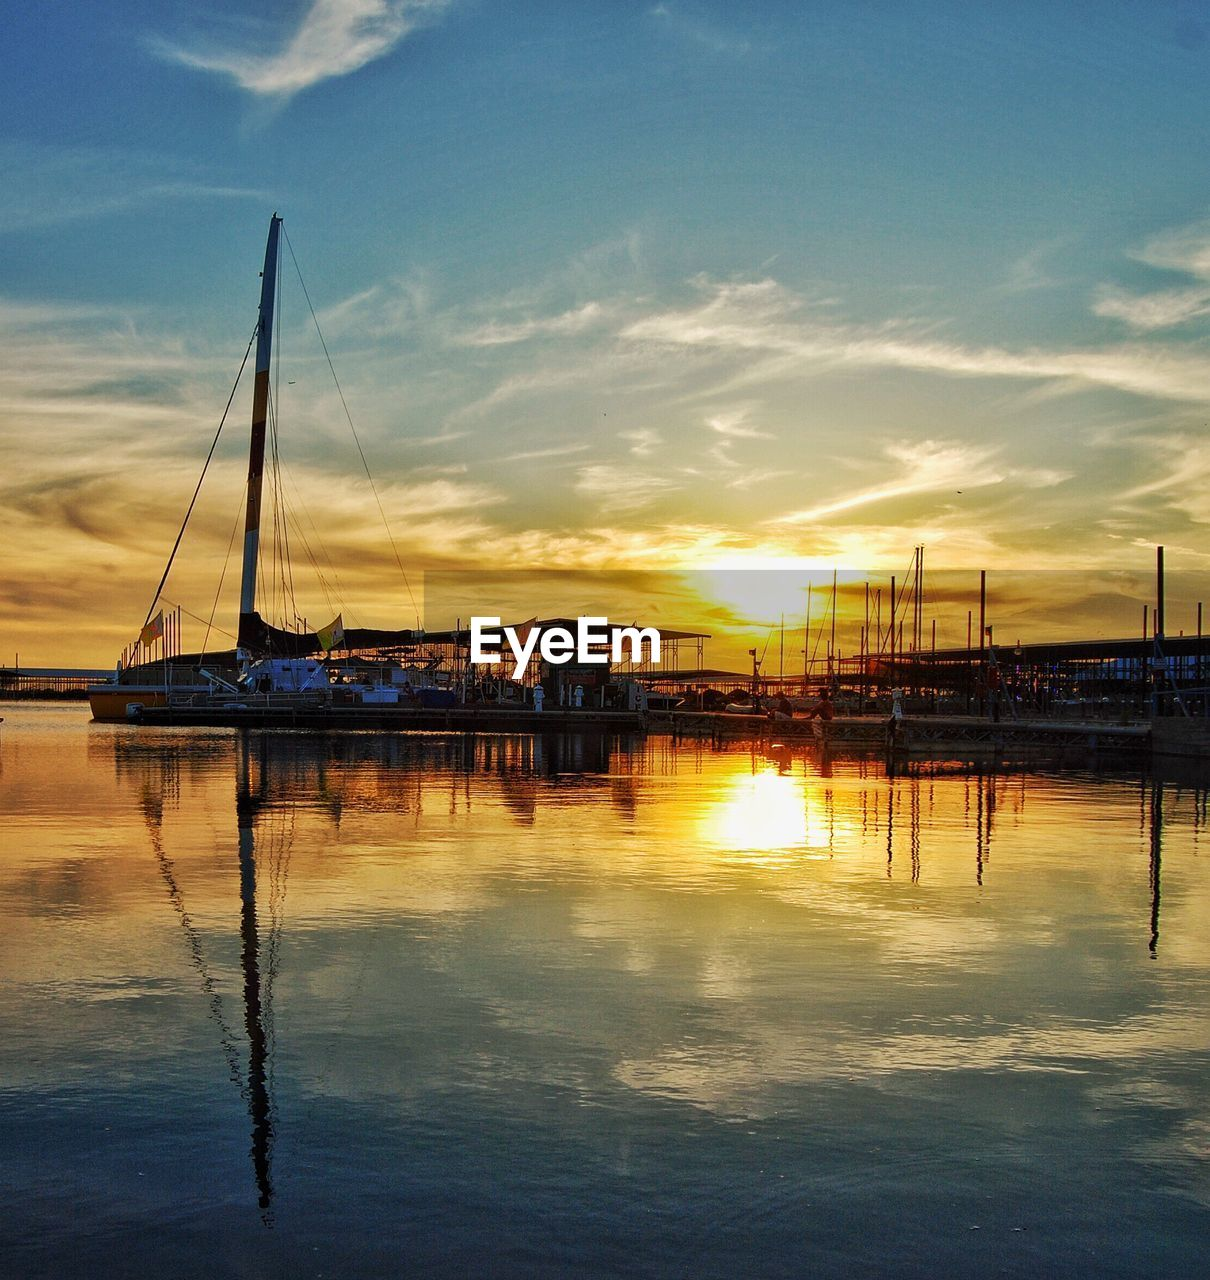 reflection, water, sunset, sky, cloud - sky, beauty in nature, scenics, built structure, tranquil scene, tranquility, nature, outdoors, waterfront, architecture, no people, nautical vessel, sea, transportation, sailboat, mast, day